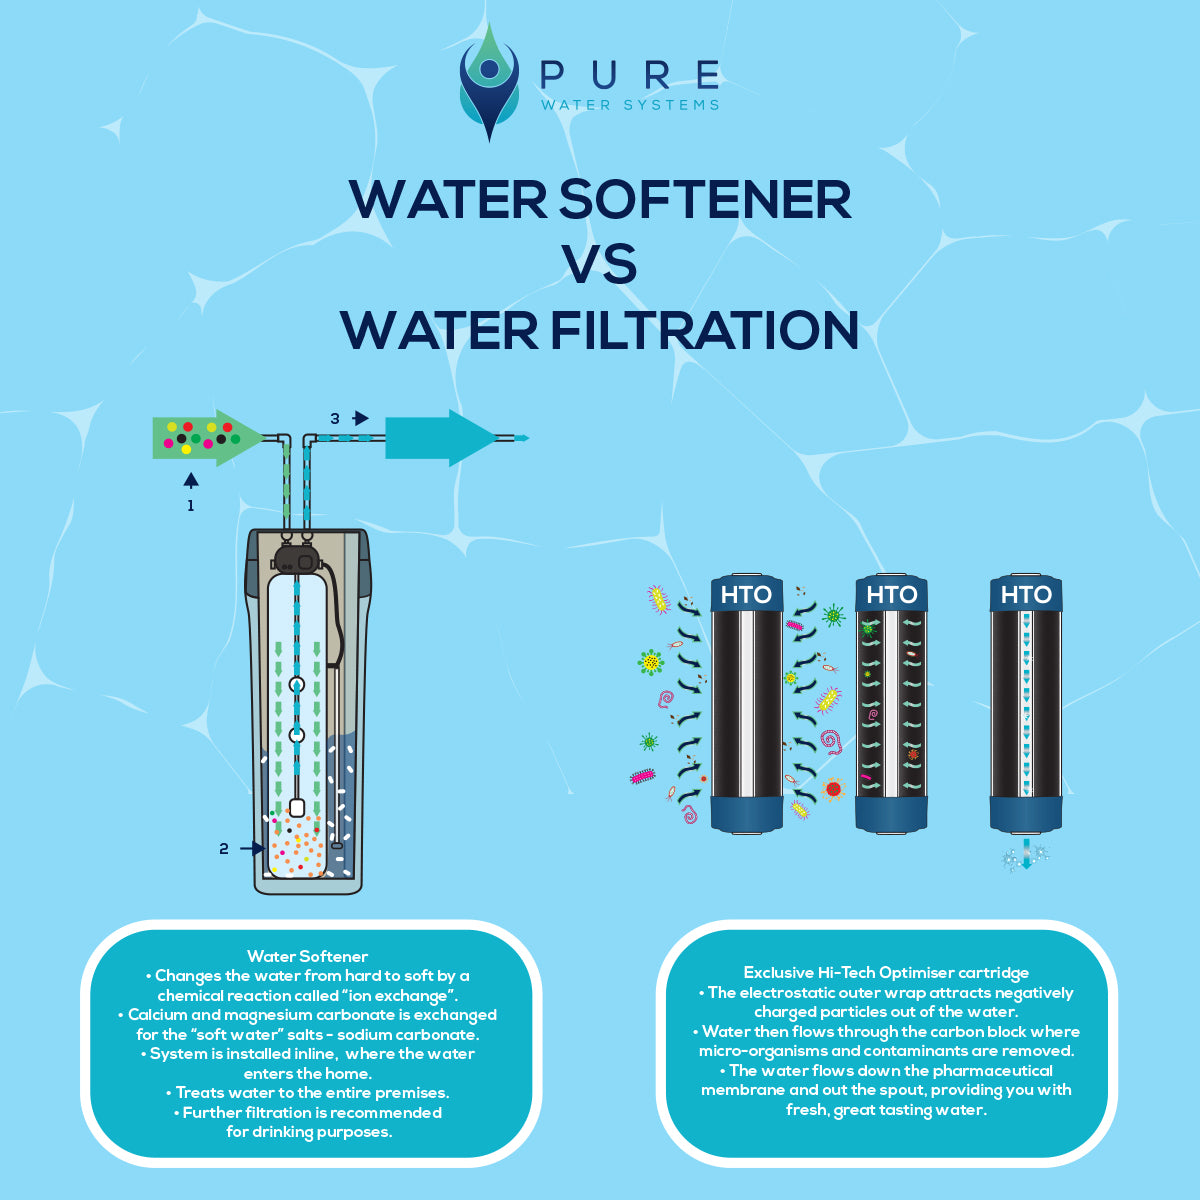 Water Softener vs Water Filtration - Điểm